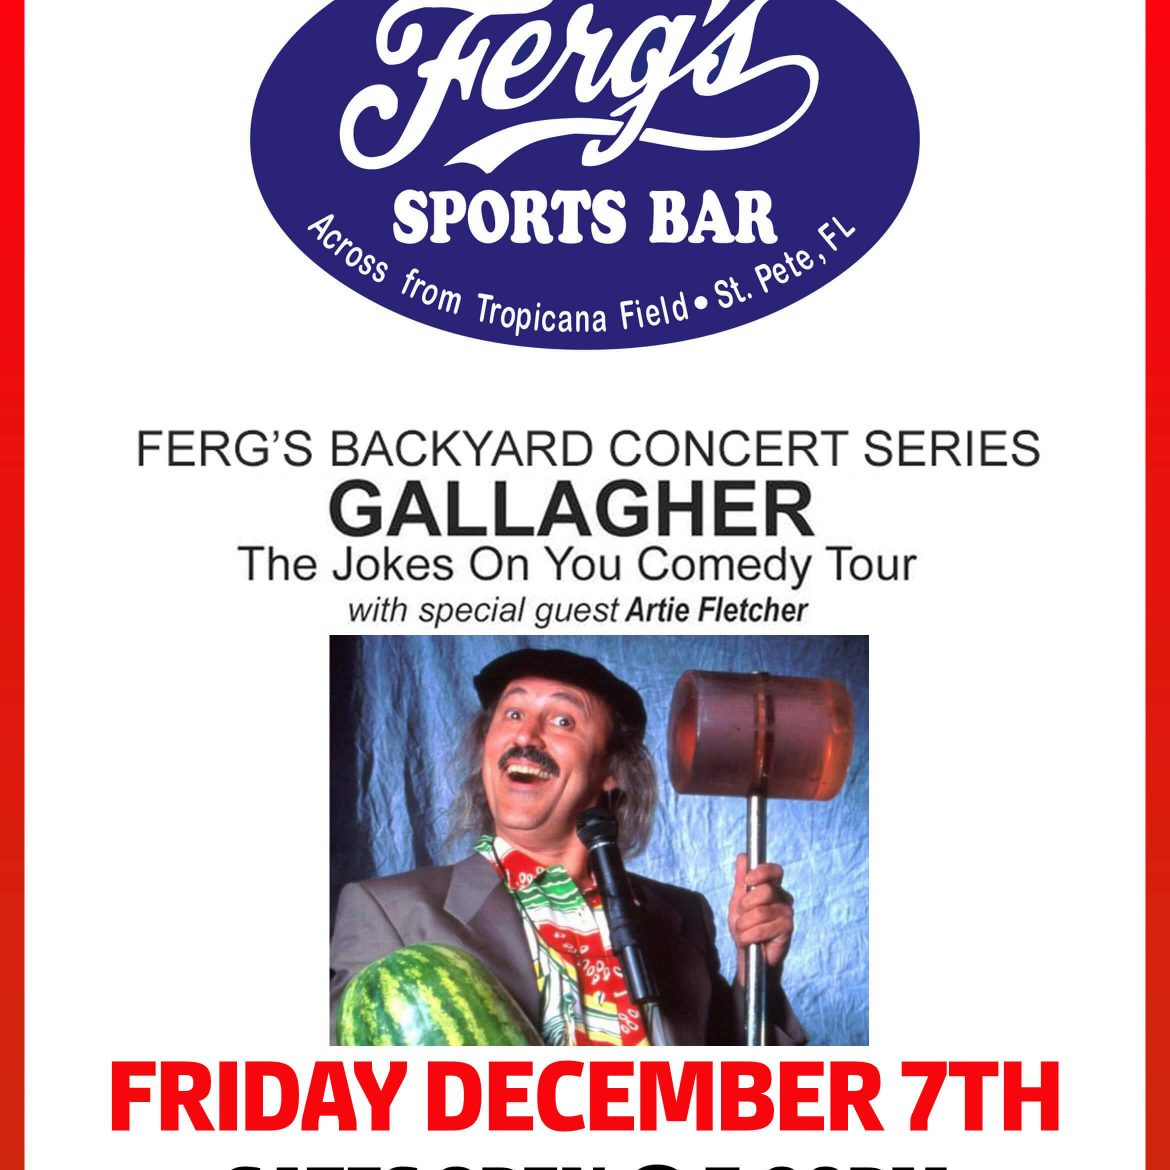 Ferg's Backyard Concert Series – Gallagher featuring Artie Fletcher